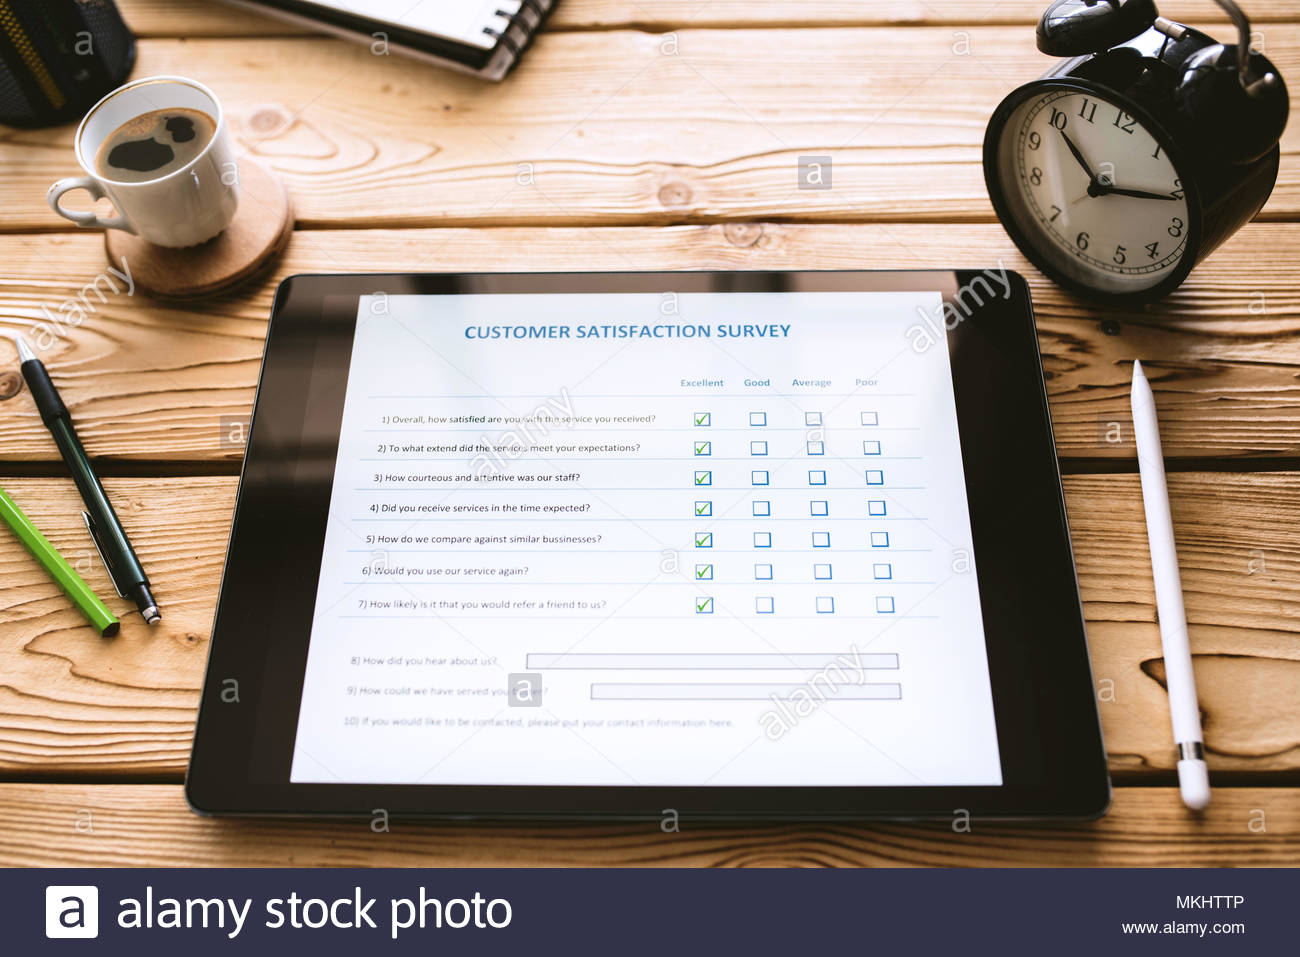 Customer Satisfaction Electronic Survey Concept on Digital Tablet Screen - Stock Image